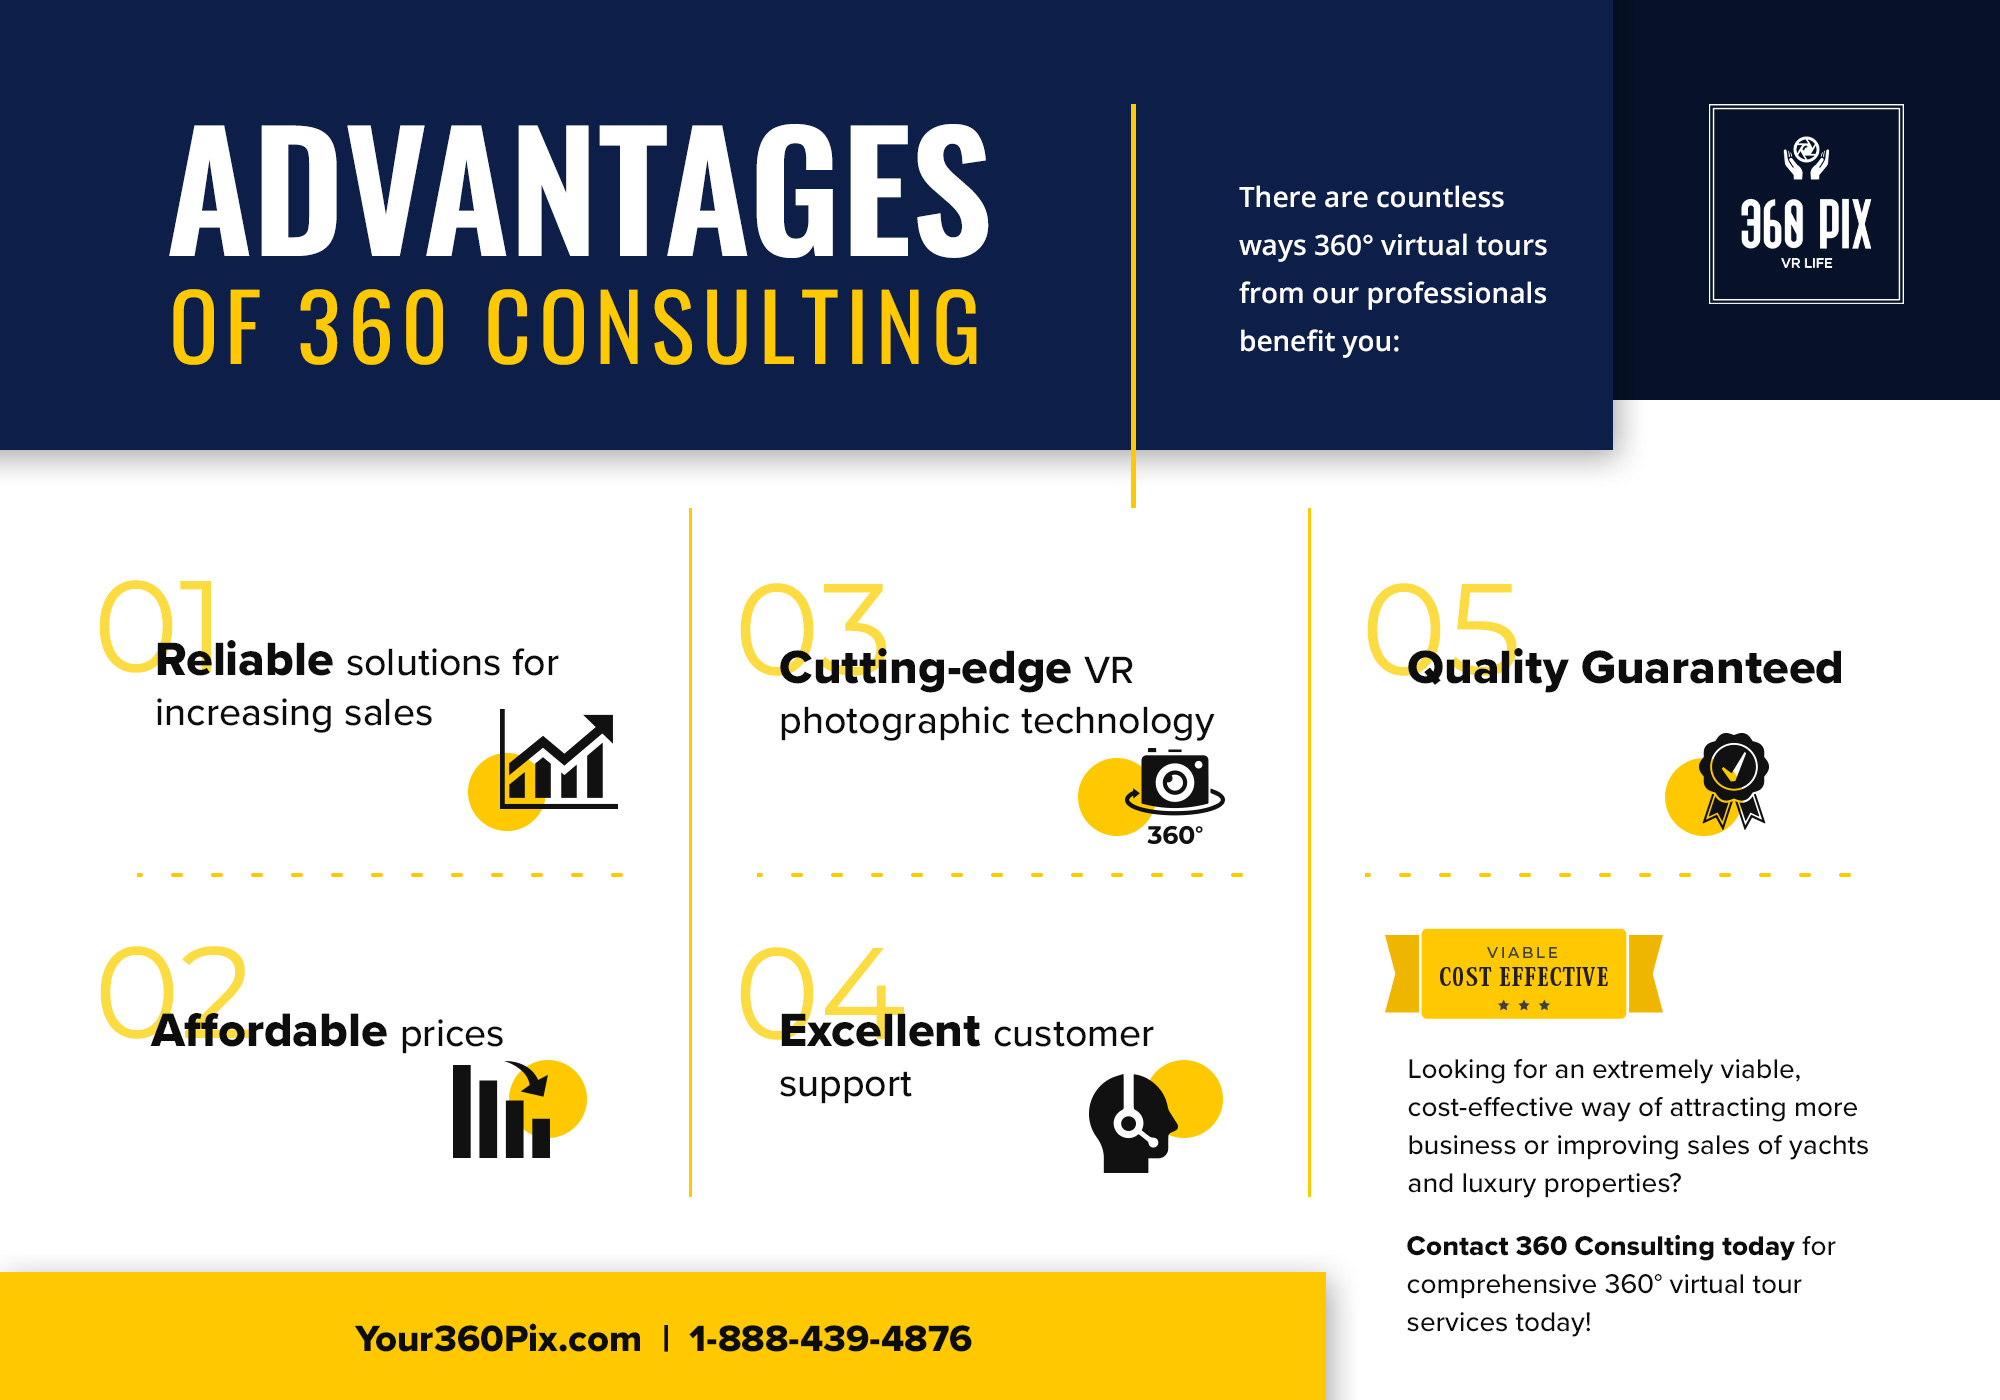 Advantages-of-360-Consulting_Infographic